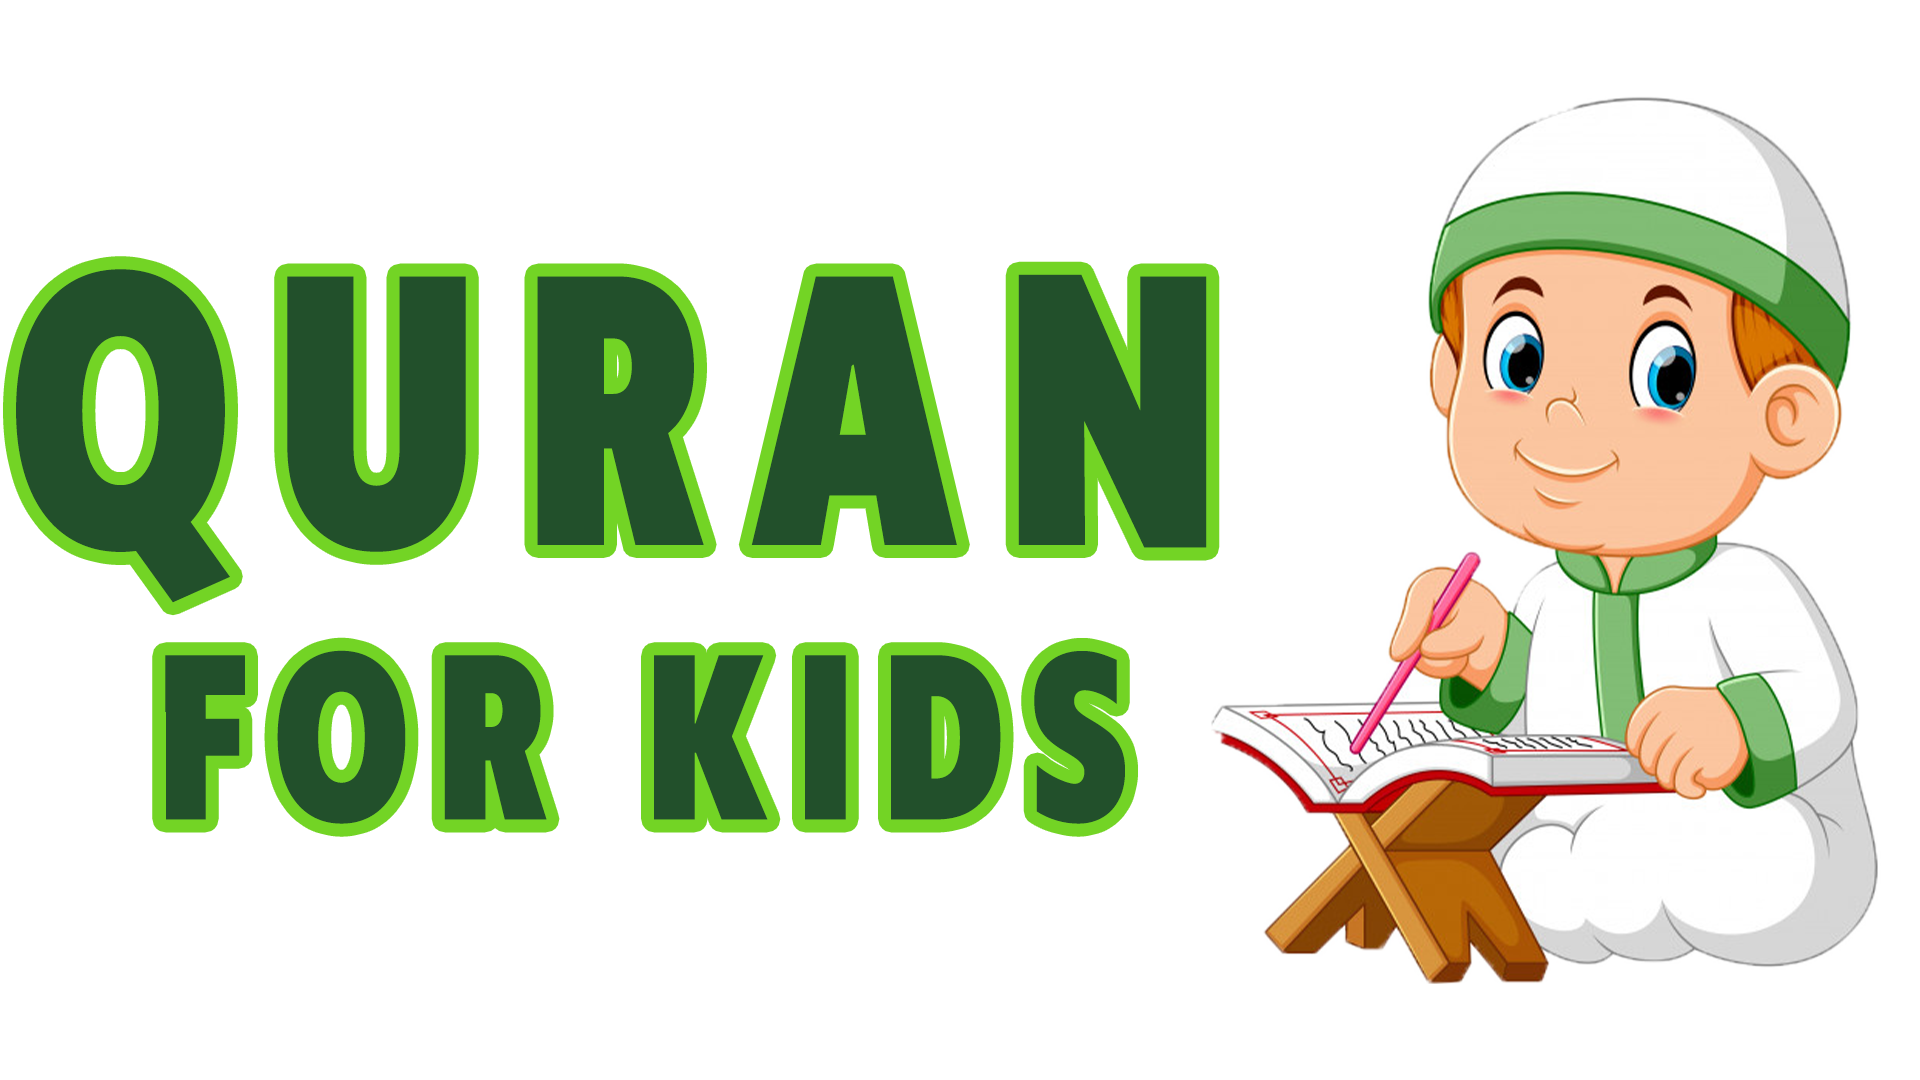 Quran for kids | learn quran online - online quran classes-Quran online